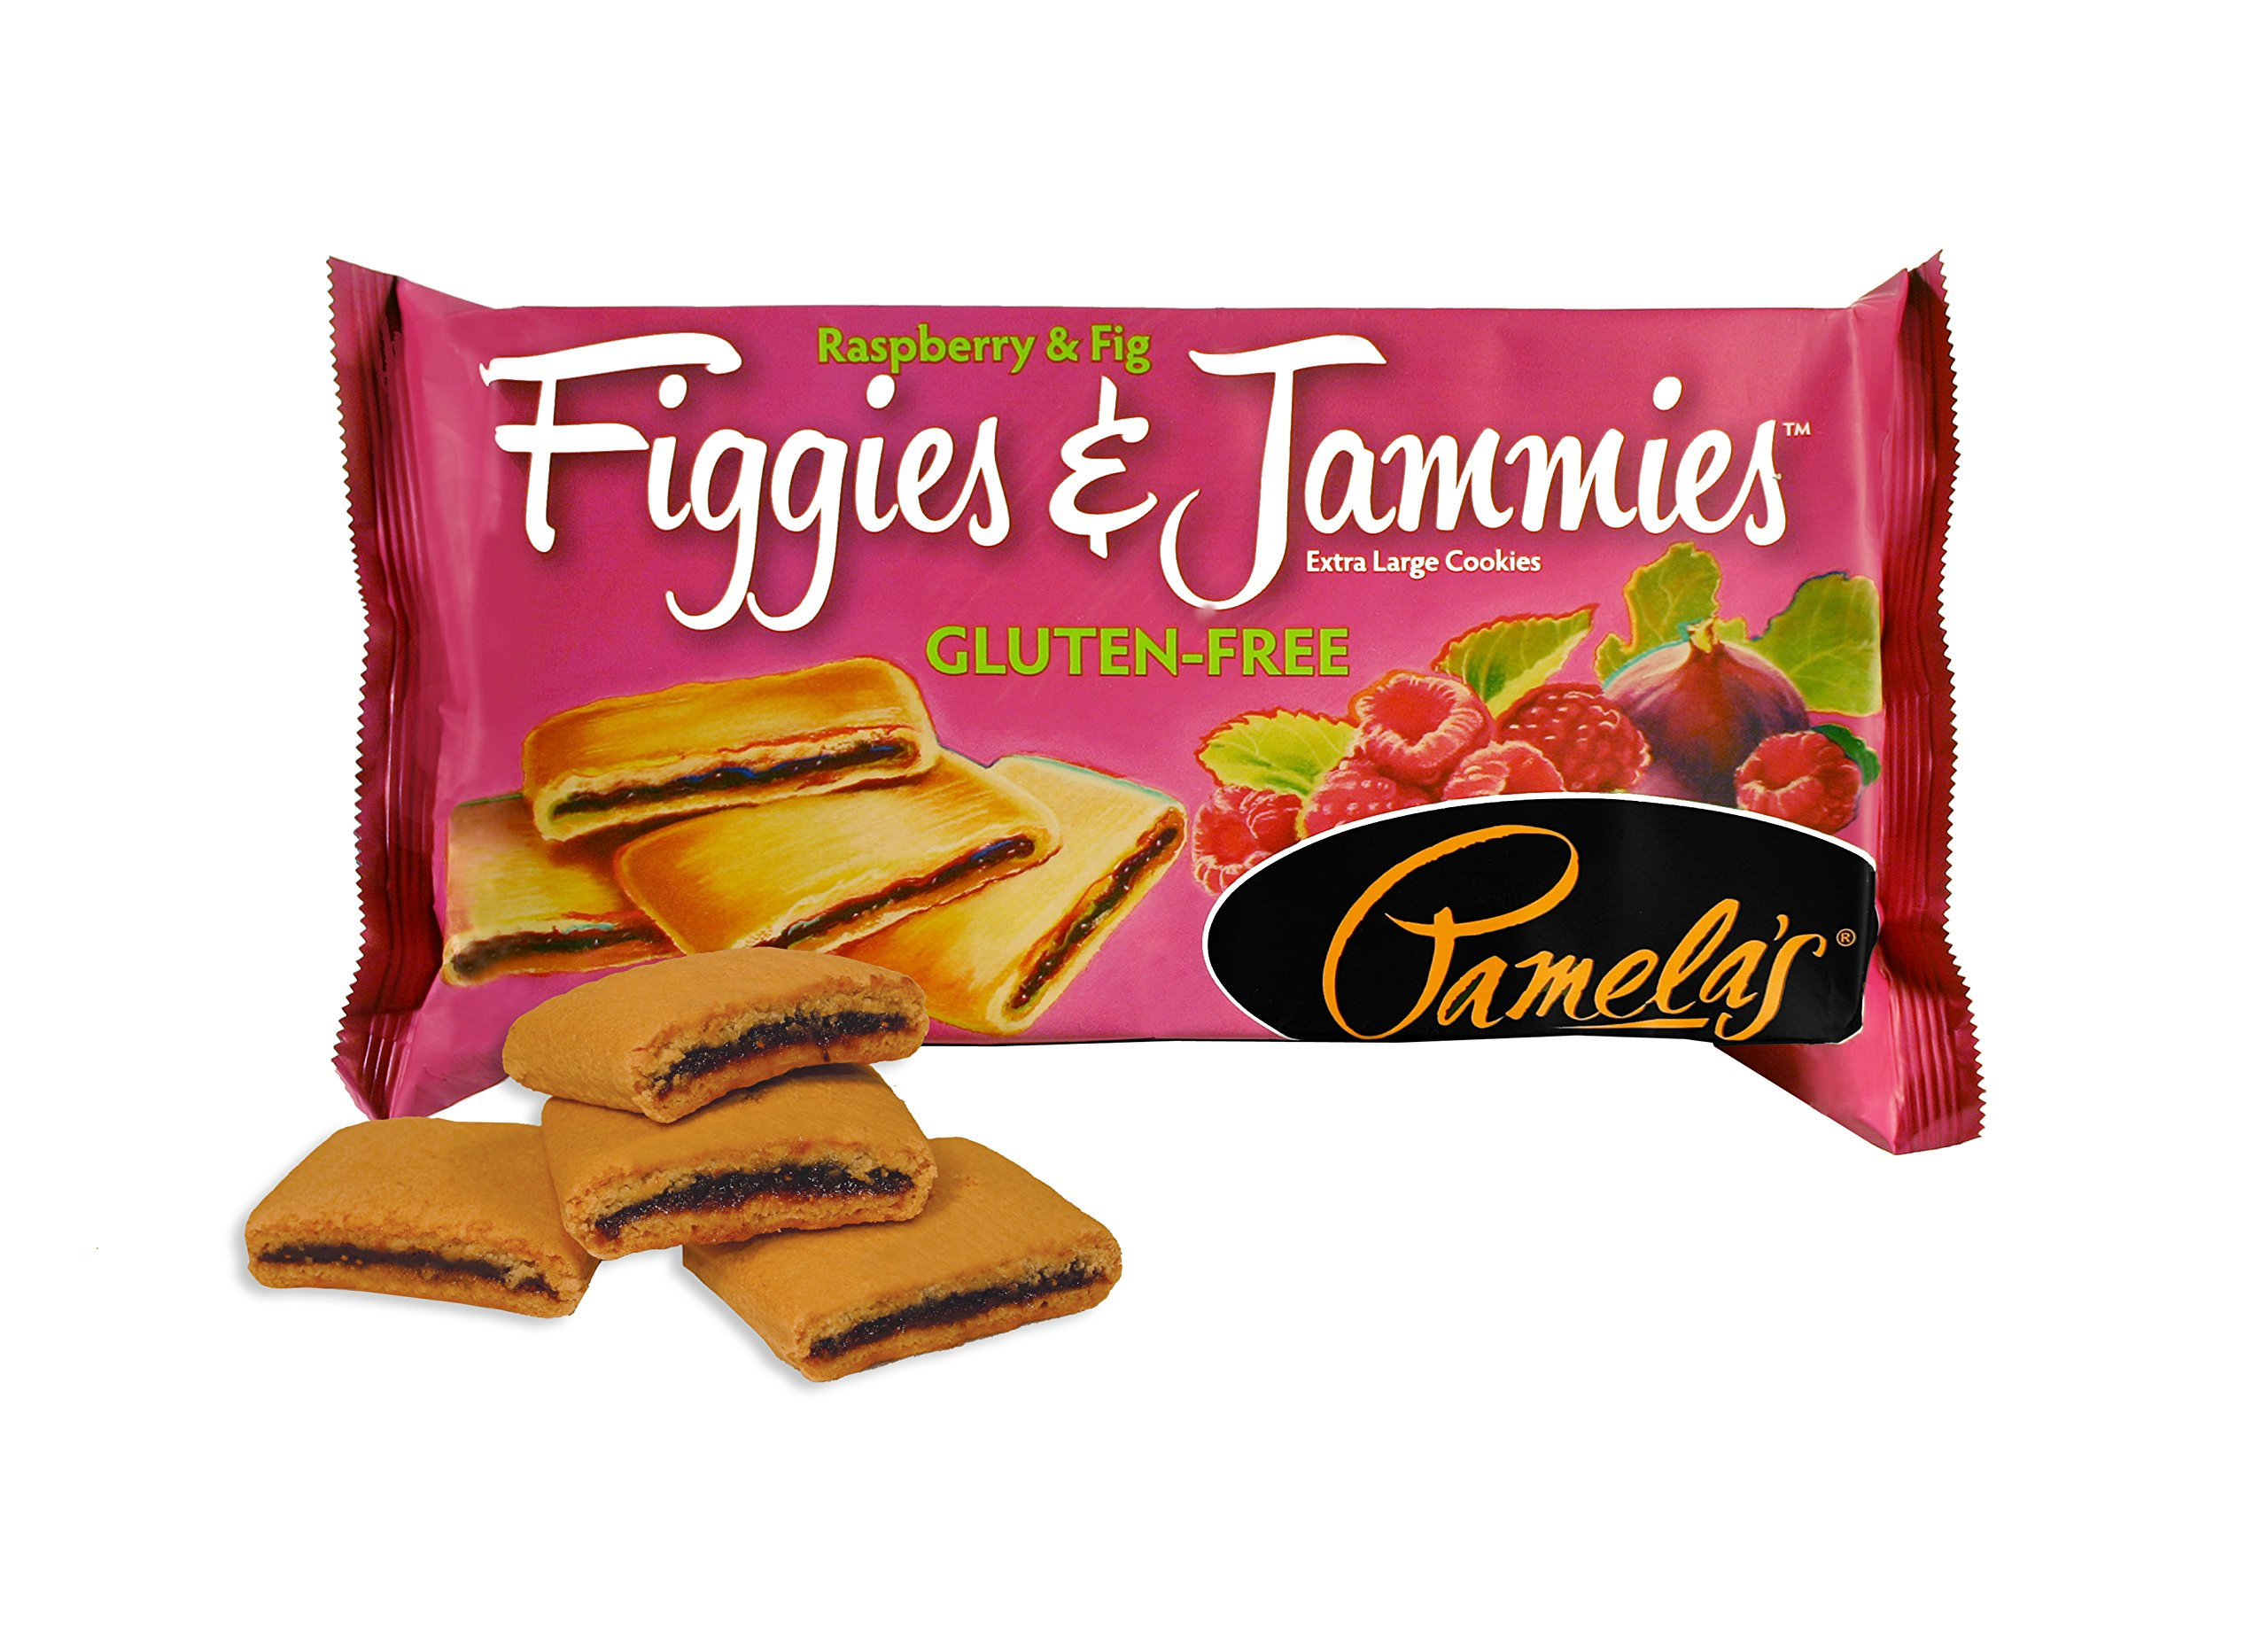 Pamela's Products Gluten Free Figgies & Jammies Cookies, Raspberry & Fig, 9 Ounce (Pack of 6) by Pamela's Products